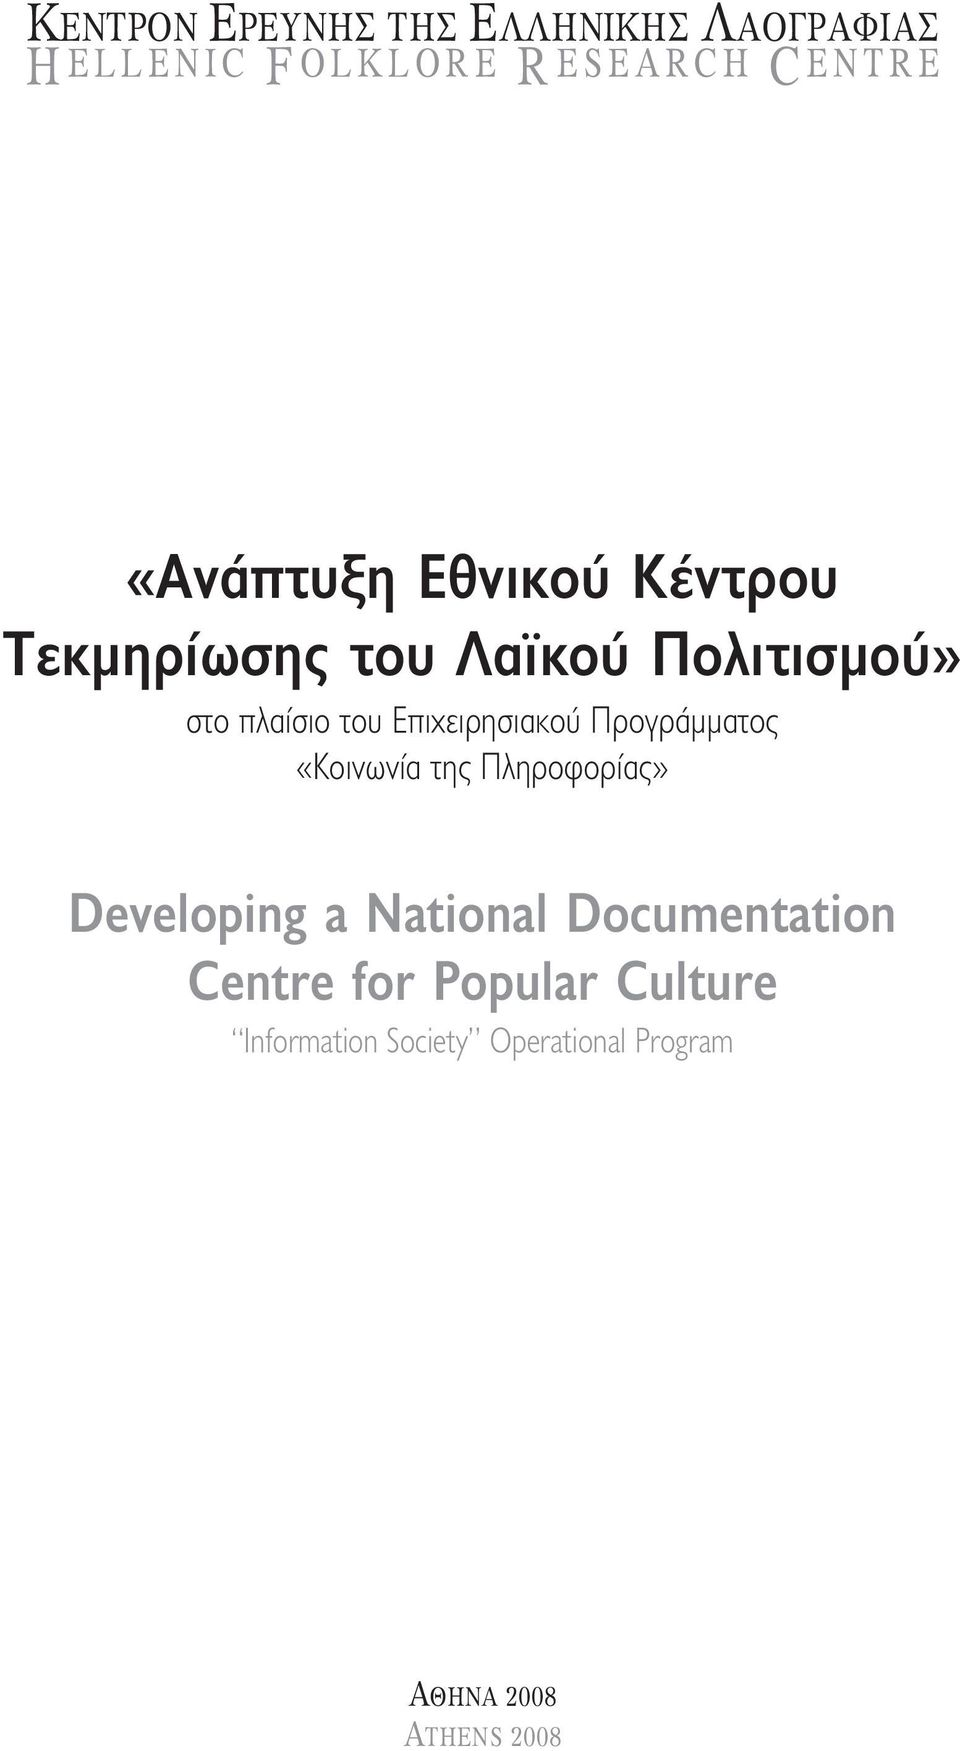 ÌÌ ÙÔ «ÔÈÓˆÓ ÙË ÏËÚÔÊÔÚ» Developing a National Documentation Centre for